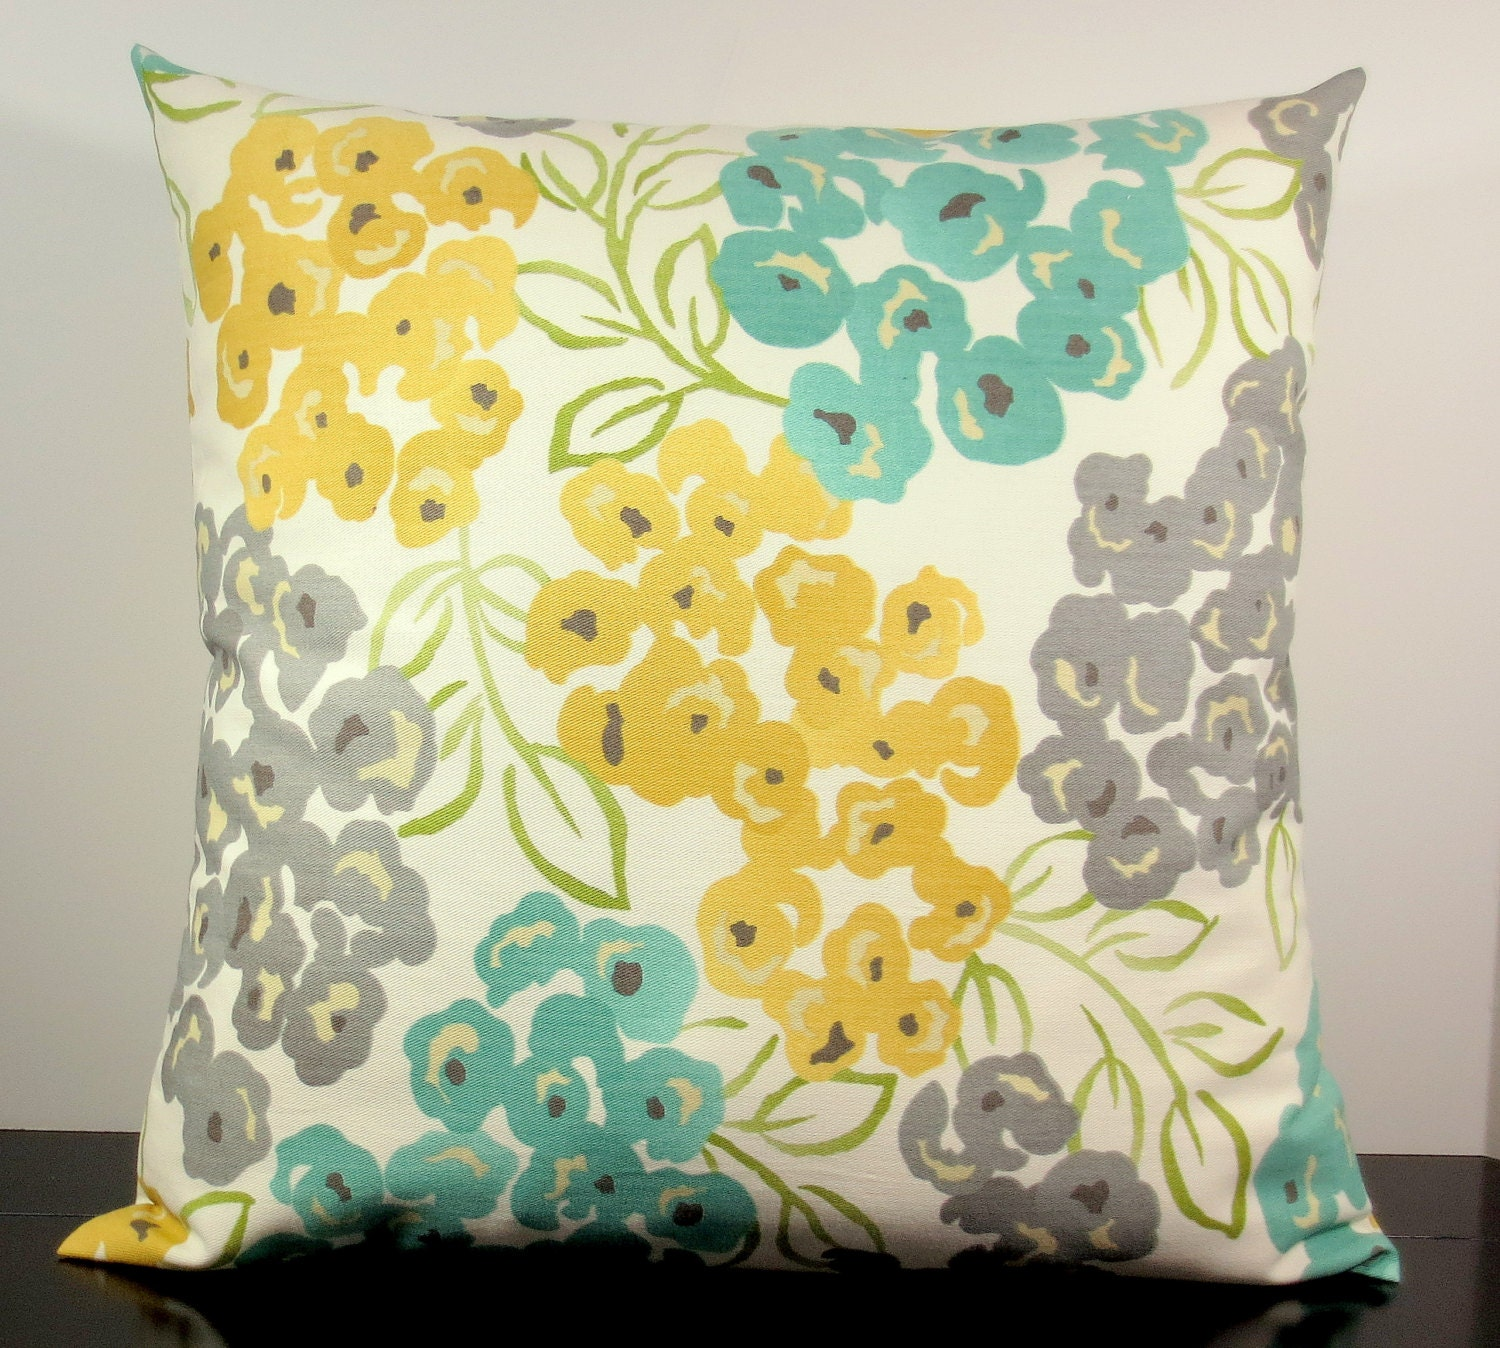 Floral Decorative Throw Pillow Cover Accent Cushion Slipcover